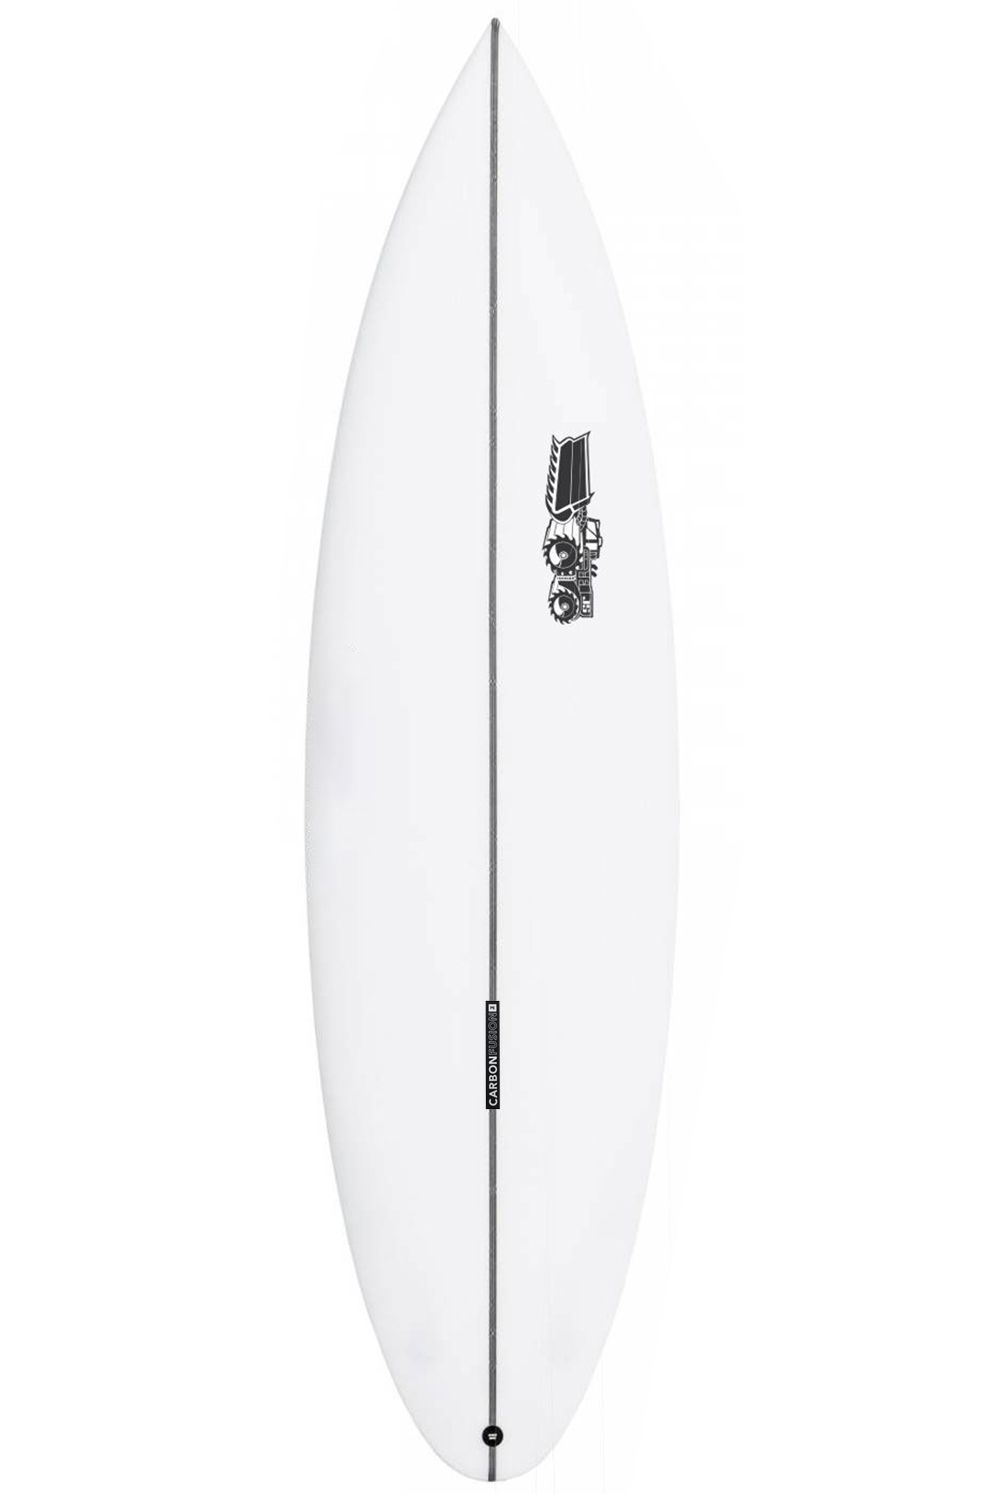 JS Surf Board 6'2 MONSTA 2020 PERFORMANCE PE Round Pin Tail - White FCS II Multisystem 6ft2